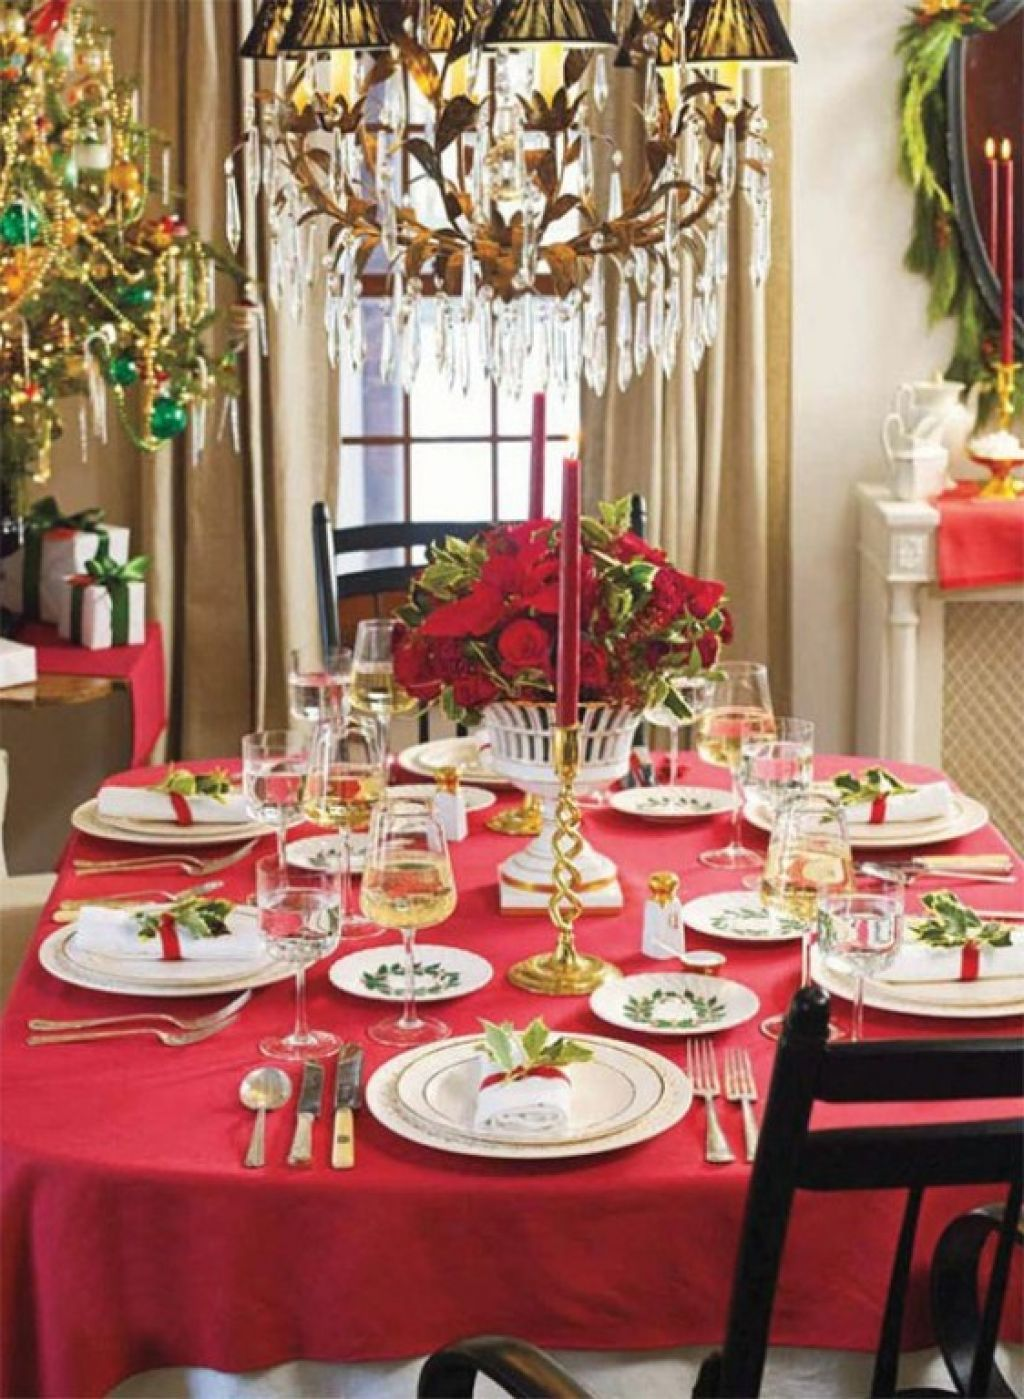 Christmas Party Table Decorations Ideas.Christmas Party Table Decoration Ideas Dining Room Cute